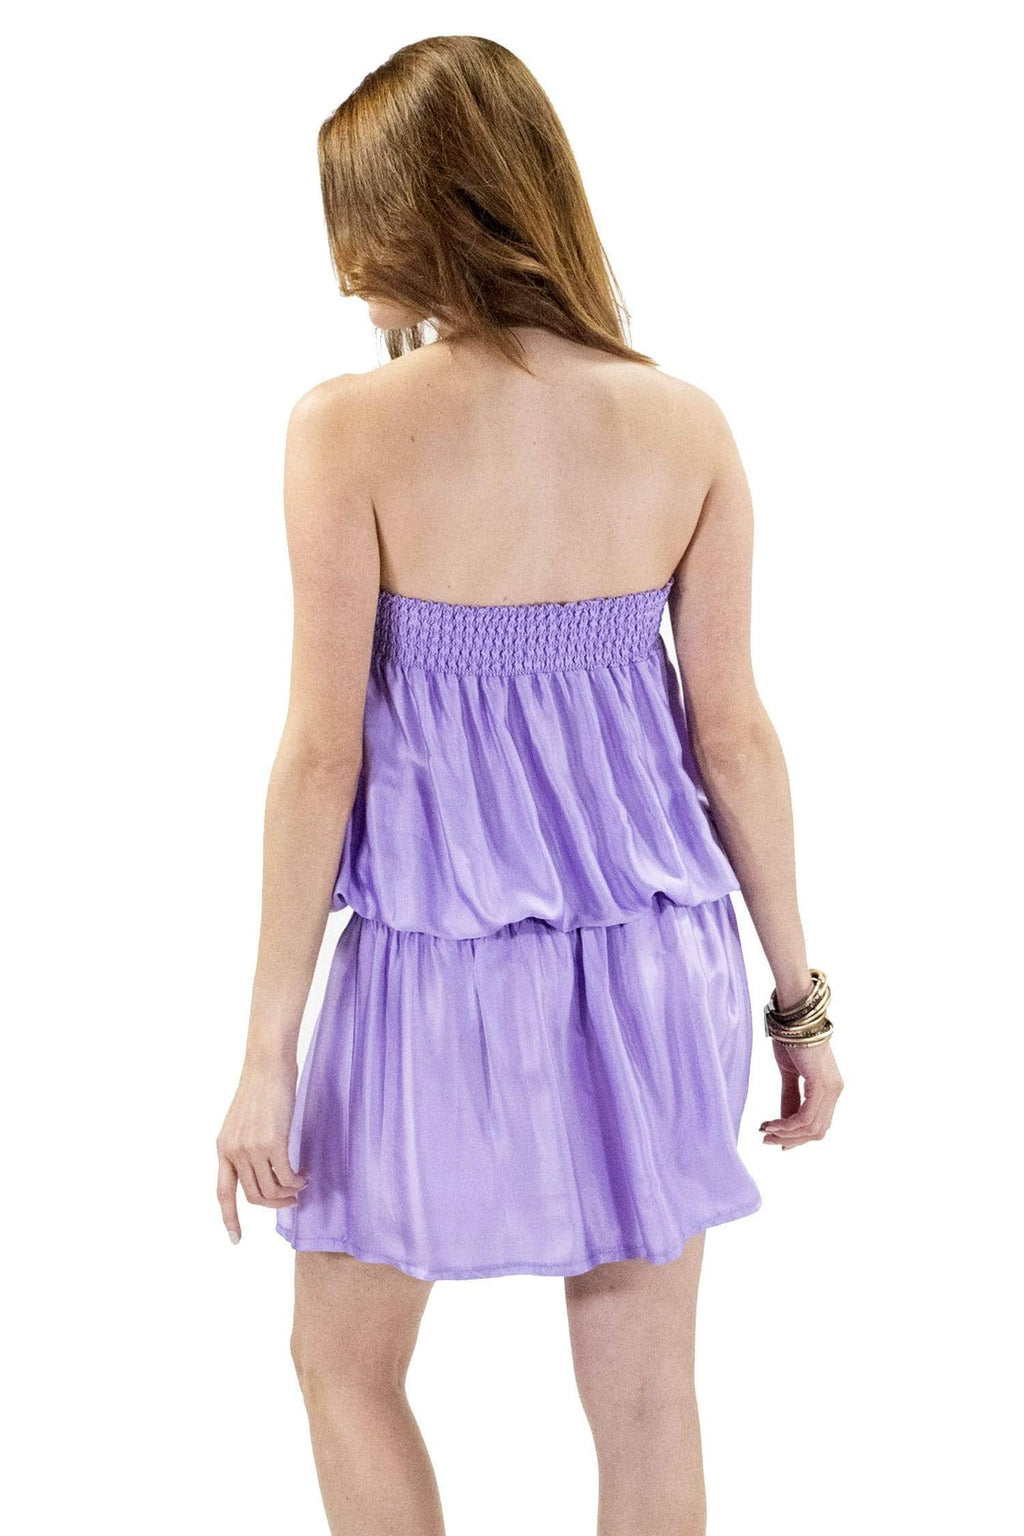 shop-sofia Kim Lilac Tube Dress Sofia Collections Italian Silk Linen Satin